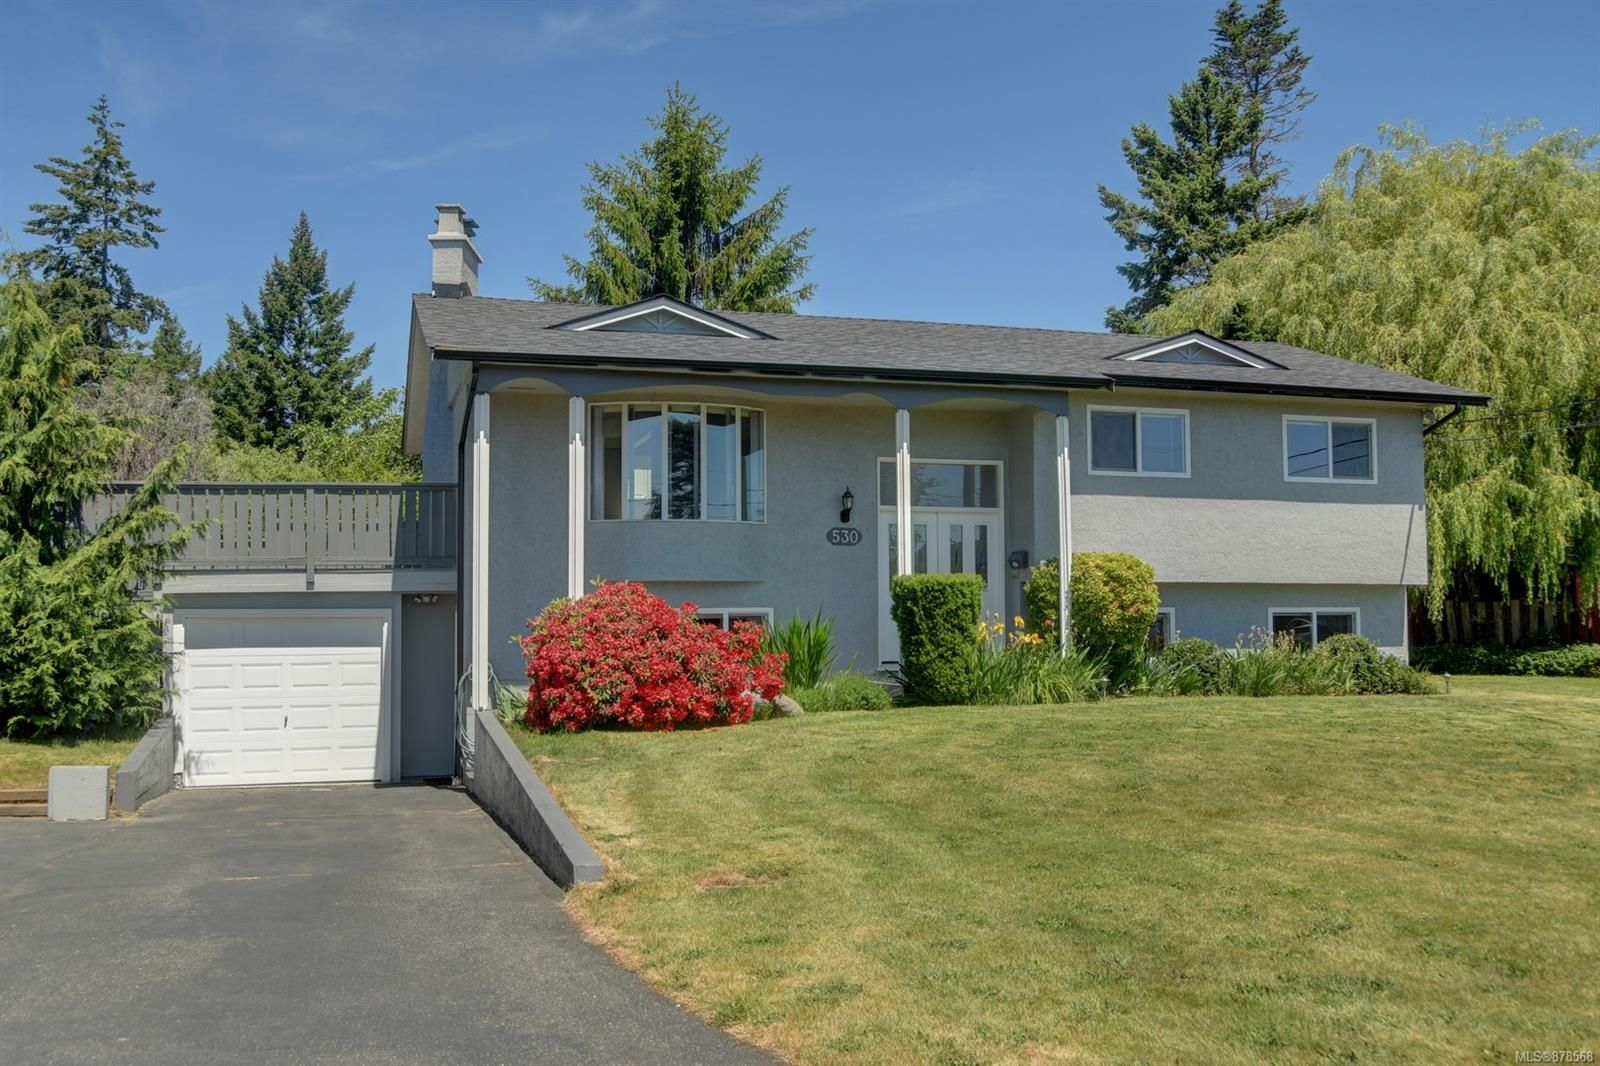 Main Photo: 530 Dunbar Cres in : SW Glanford House for sale (Saanich West)  : MLS®# 878568